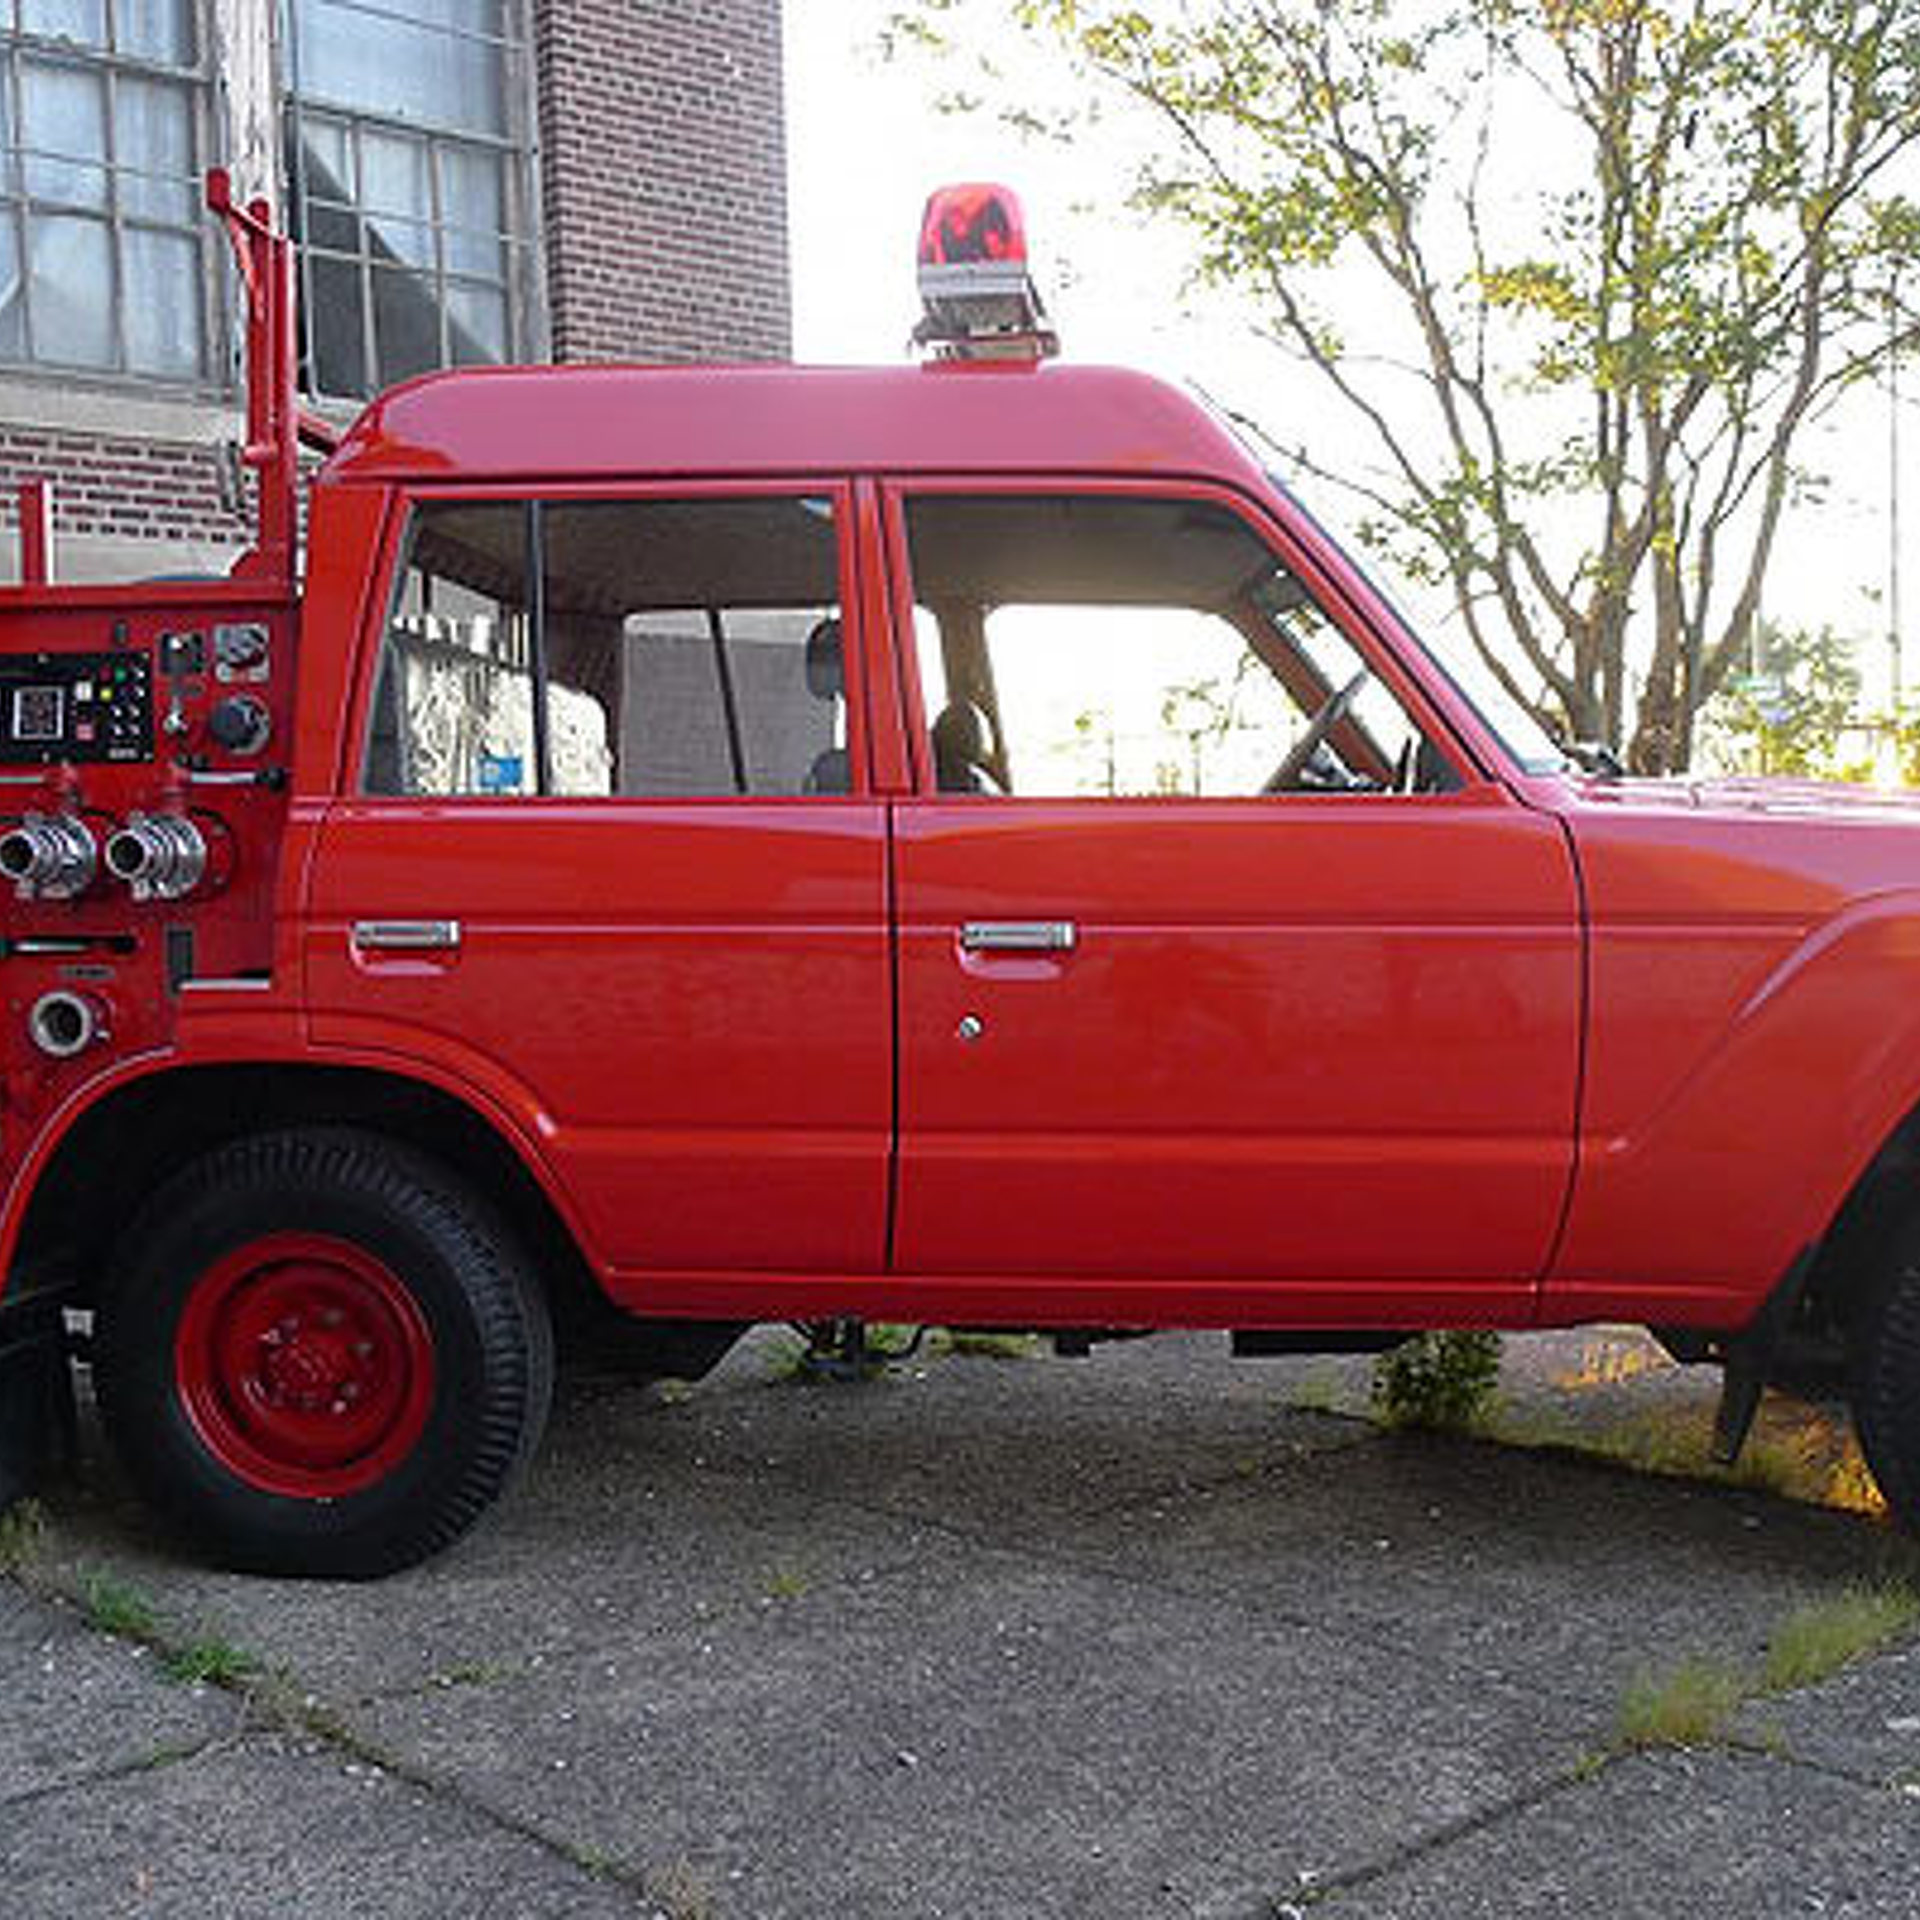 This Toyota Land Cruiser is a Serious, Go-Anywhere Firetruck